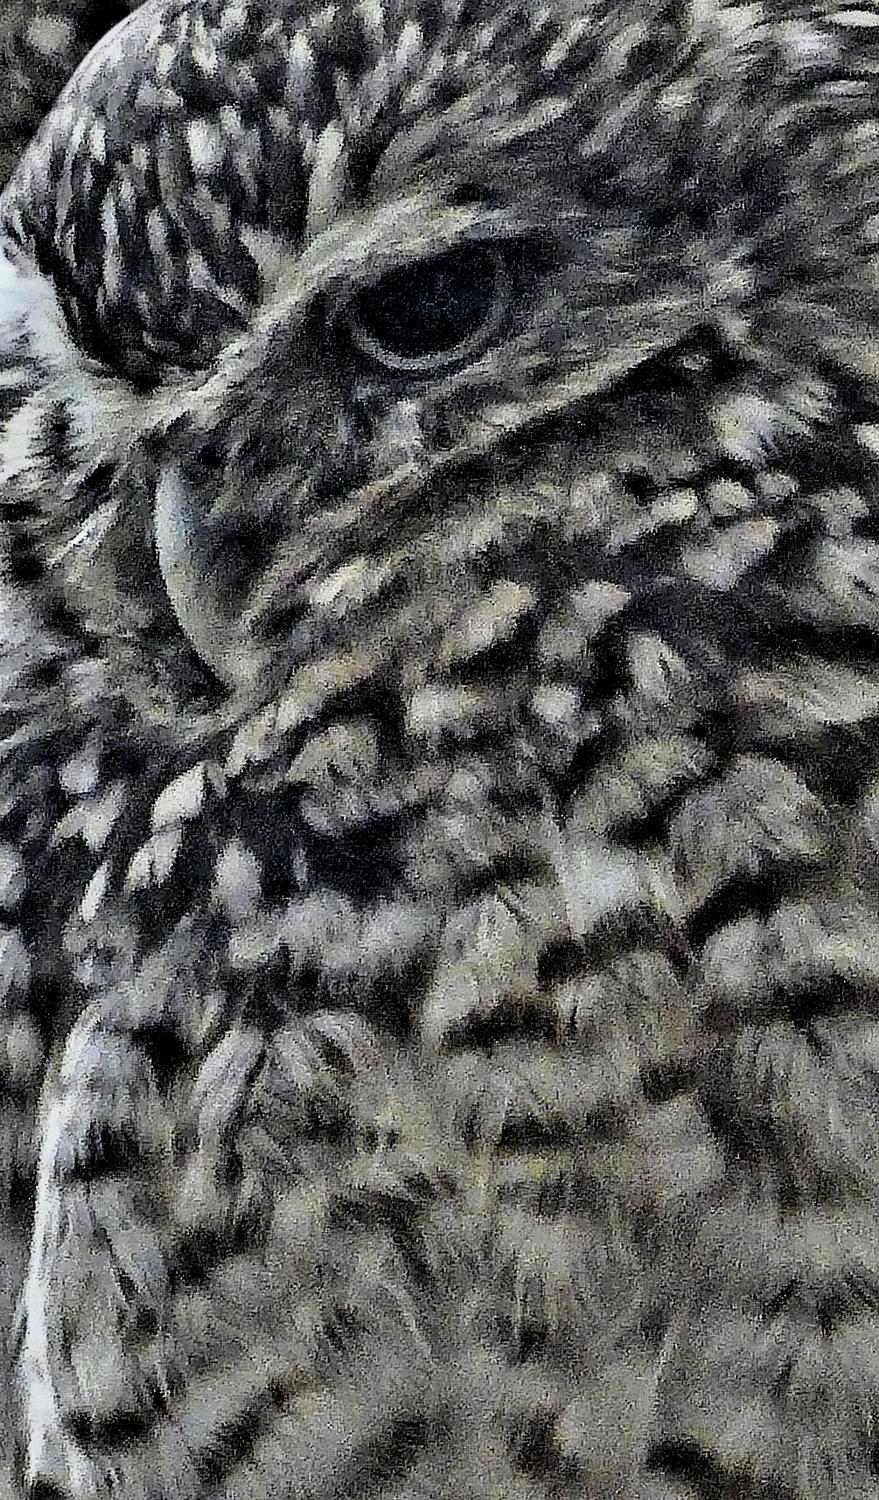 - Mr. Owl, close up, displays an impressionistic demeanor. - - Panasonic DMC-LF1 - Washington DC National zoo - Tony Karp, design, art, photography, techno-impressionist, techno-impressionism, aerial photography , drone , drones , dji , mavic pro , video , 3D printing - Books -